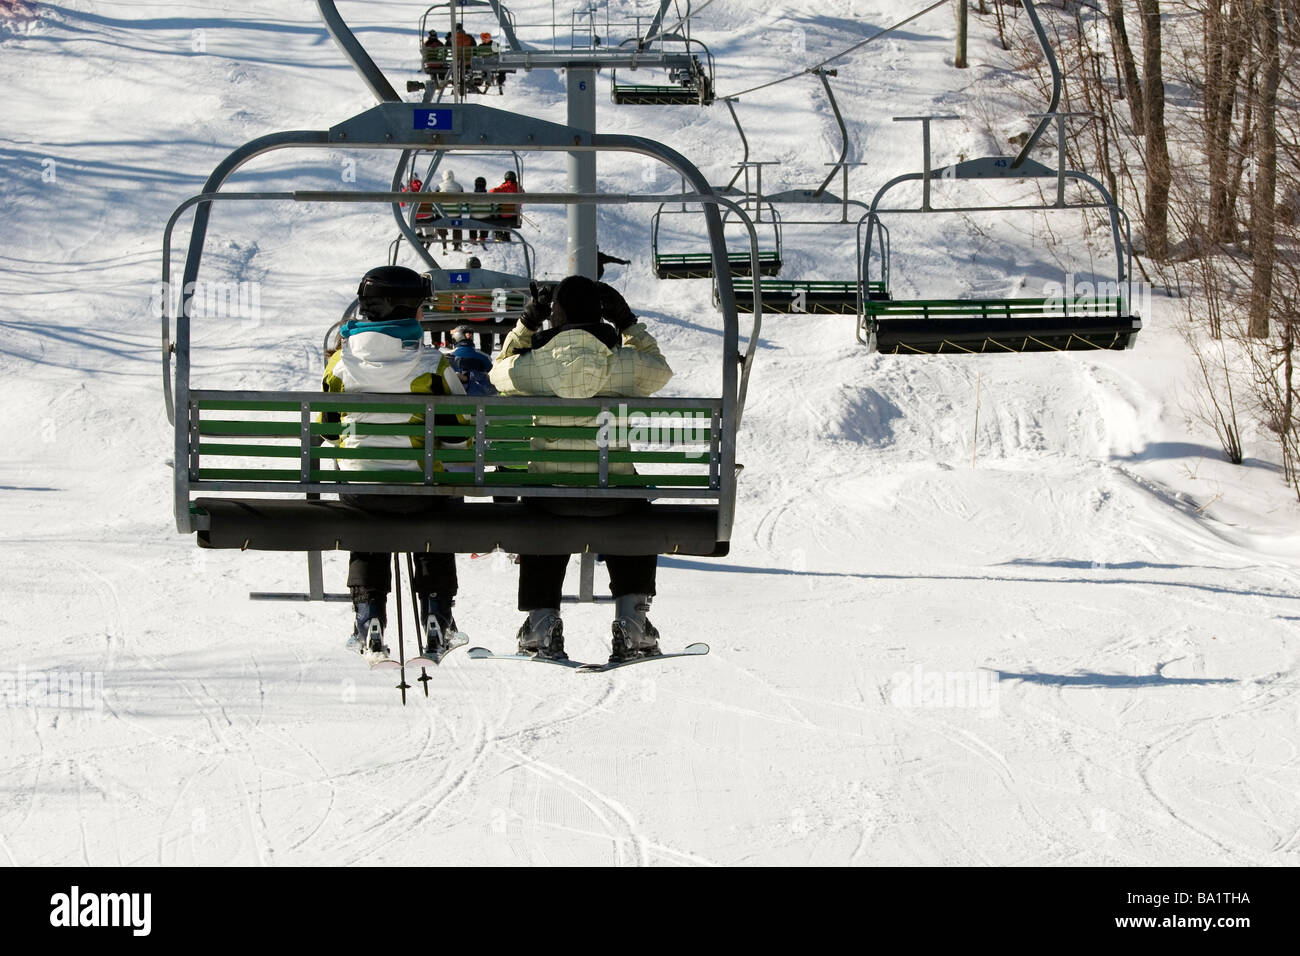 Two people on chairlift ready to go skiing - Stock Image